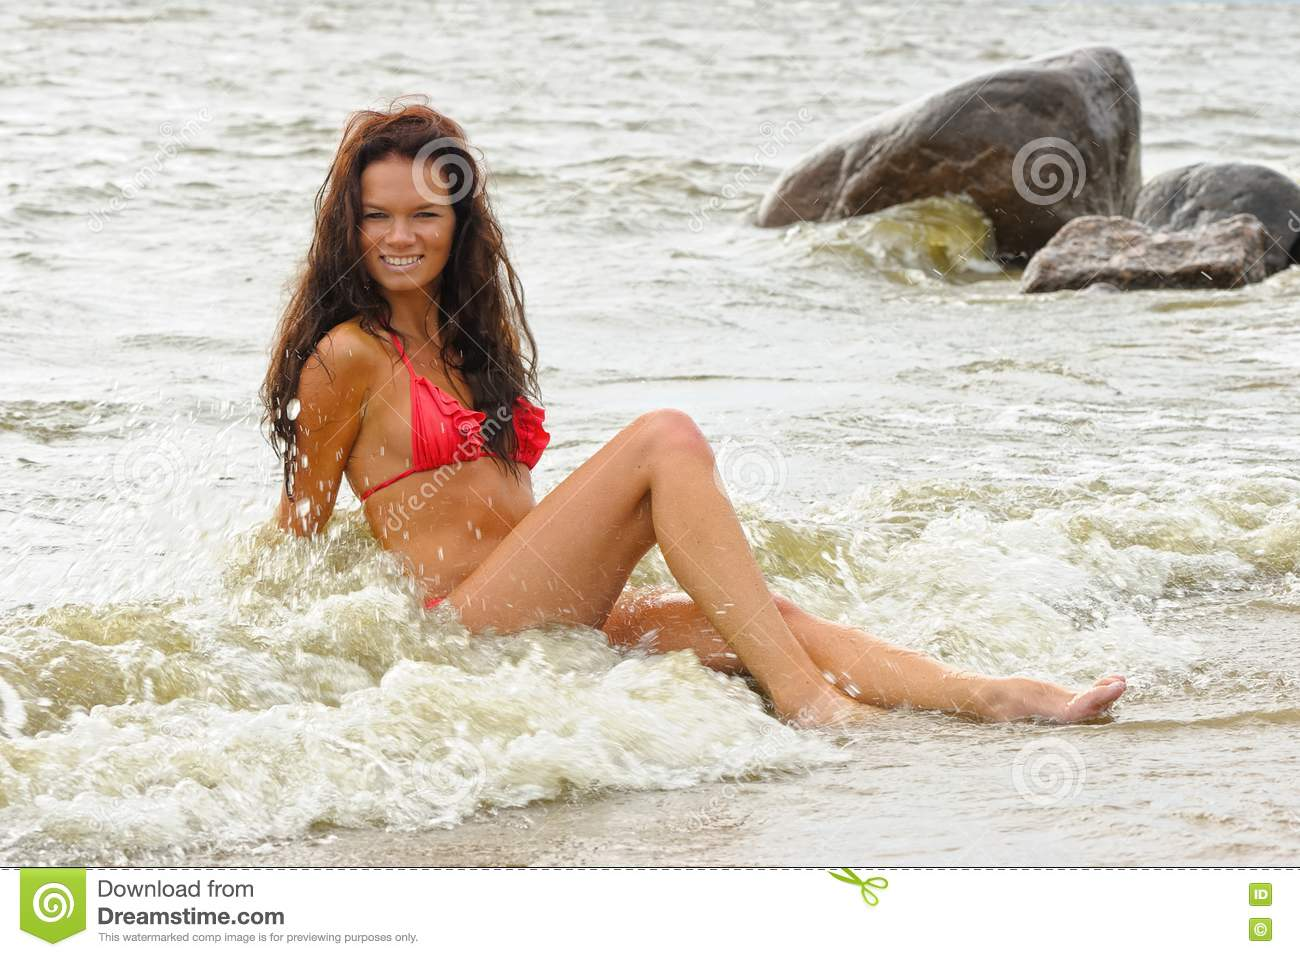 Woman In Bikini At Sea Picture. Image  15929247 8eea6612bcc